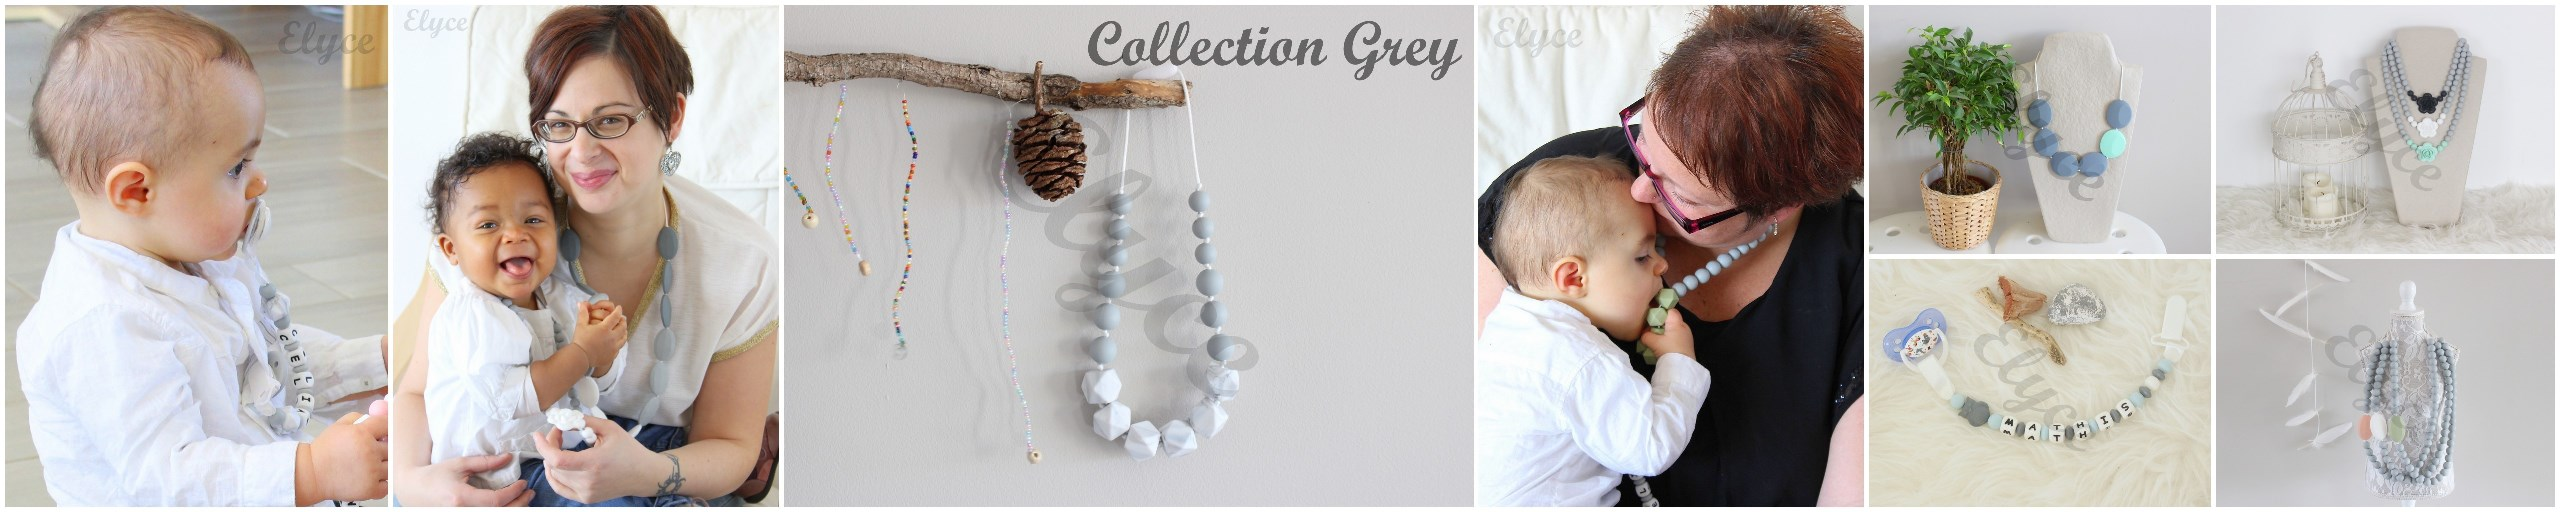 collier de dentition en silicone teething necklace for mom mama and baby pour maman et bébé, attache tétine personnalisé personnalised pacifier clip